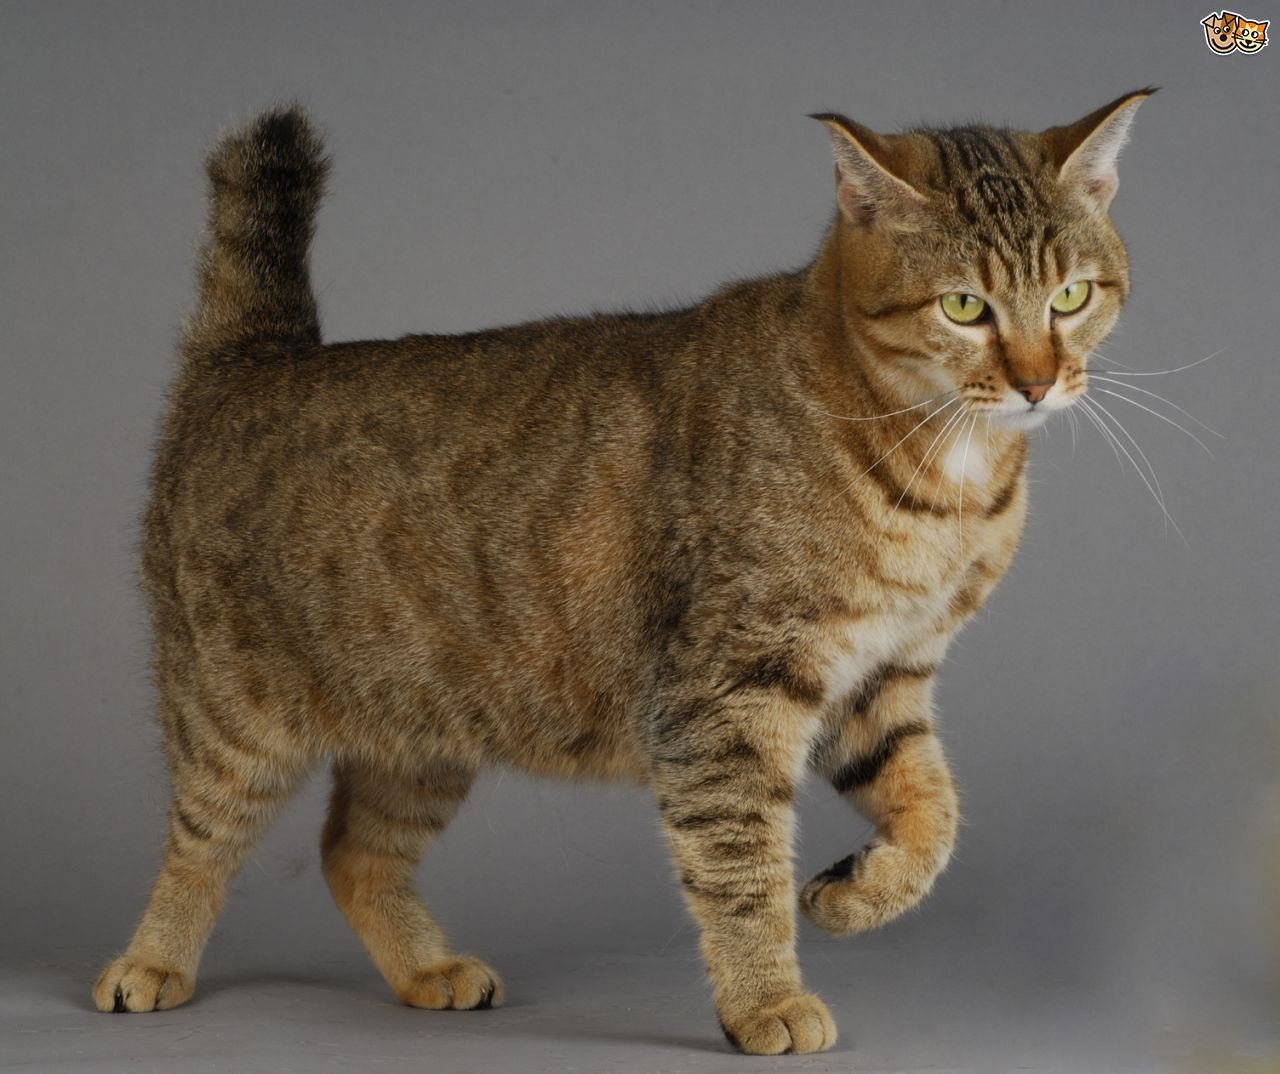 Cat Lover Blog Cat Breeds